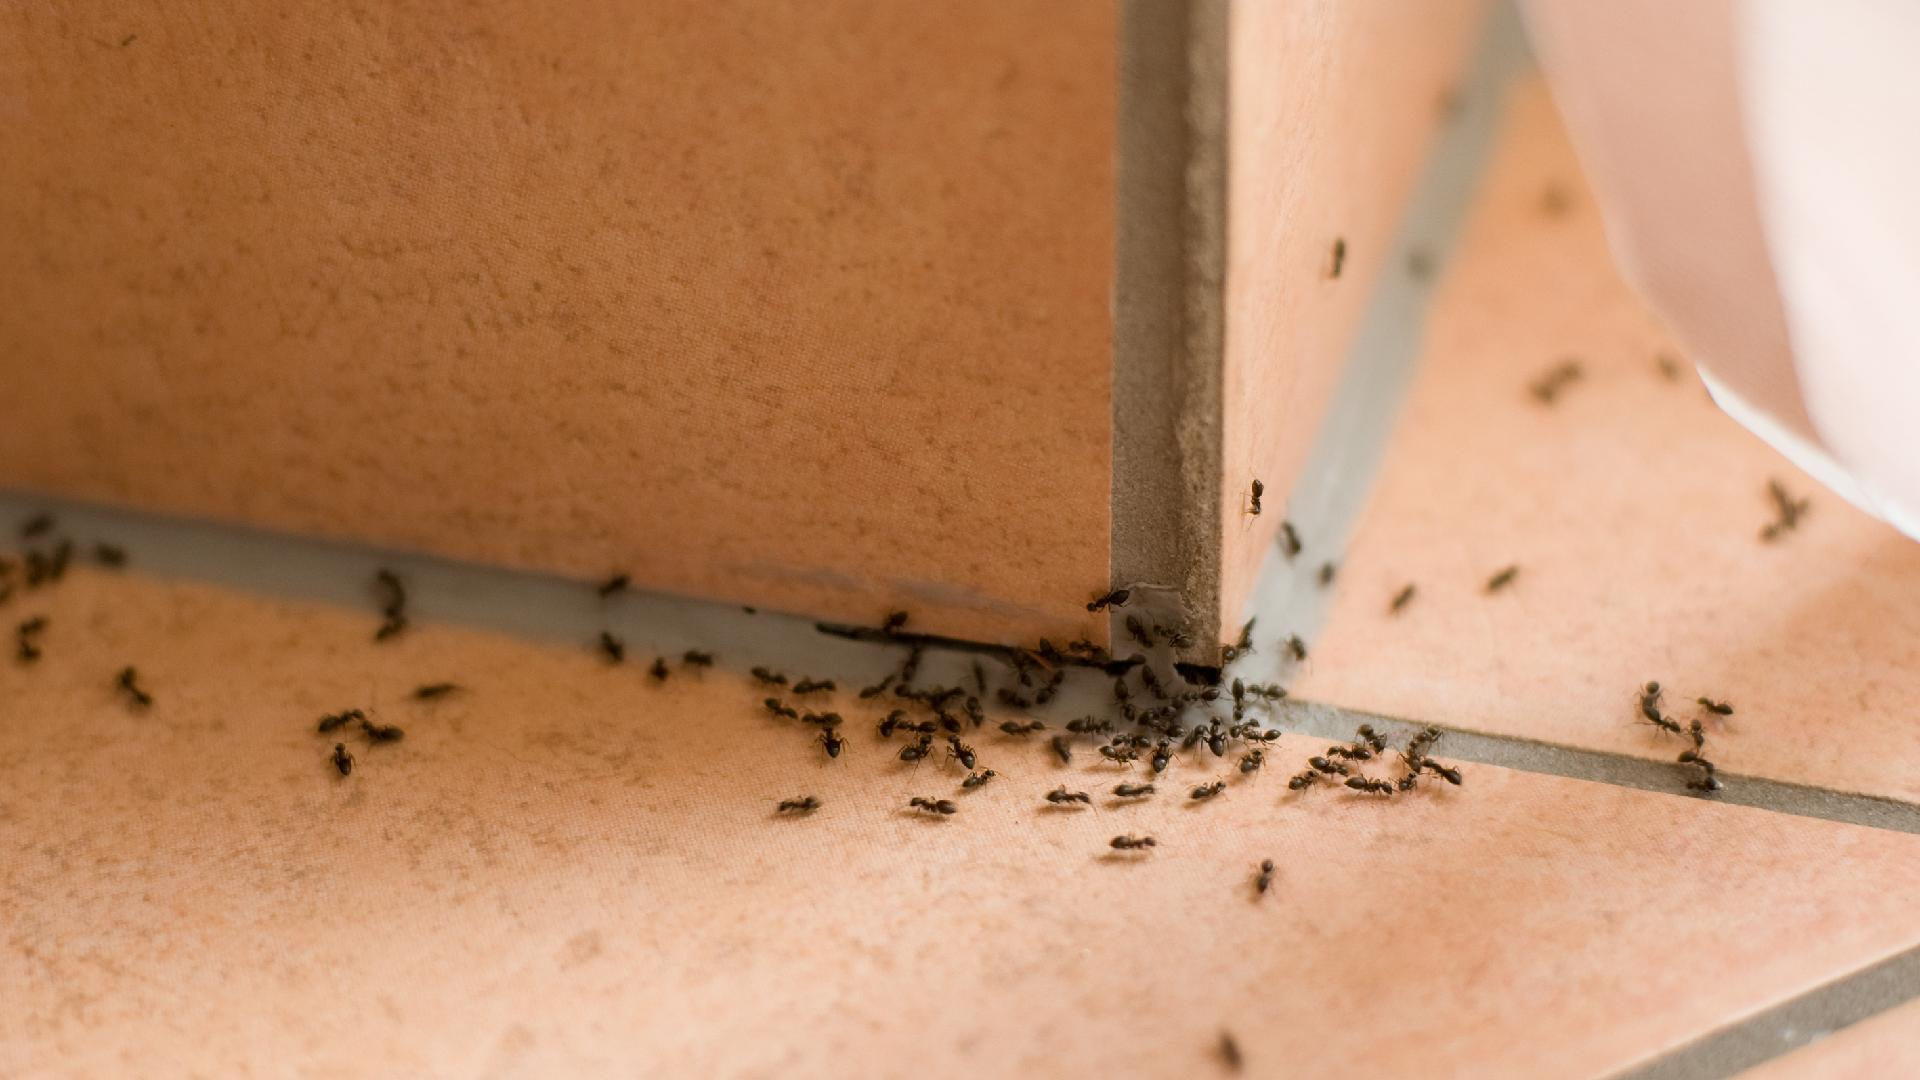 How to get rid of small ants in your home